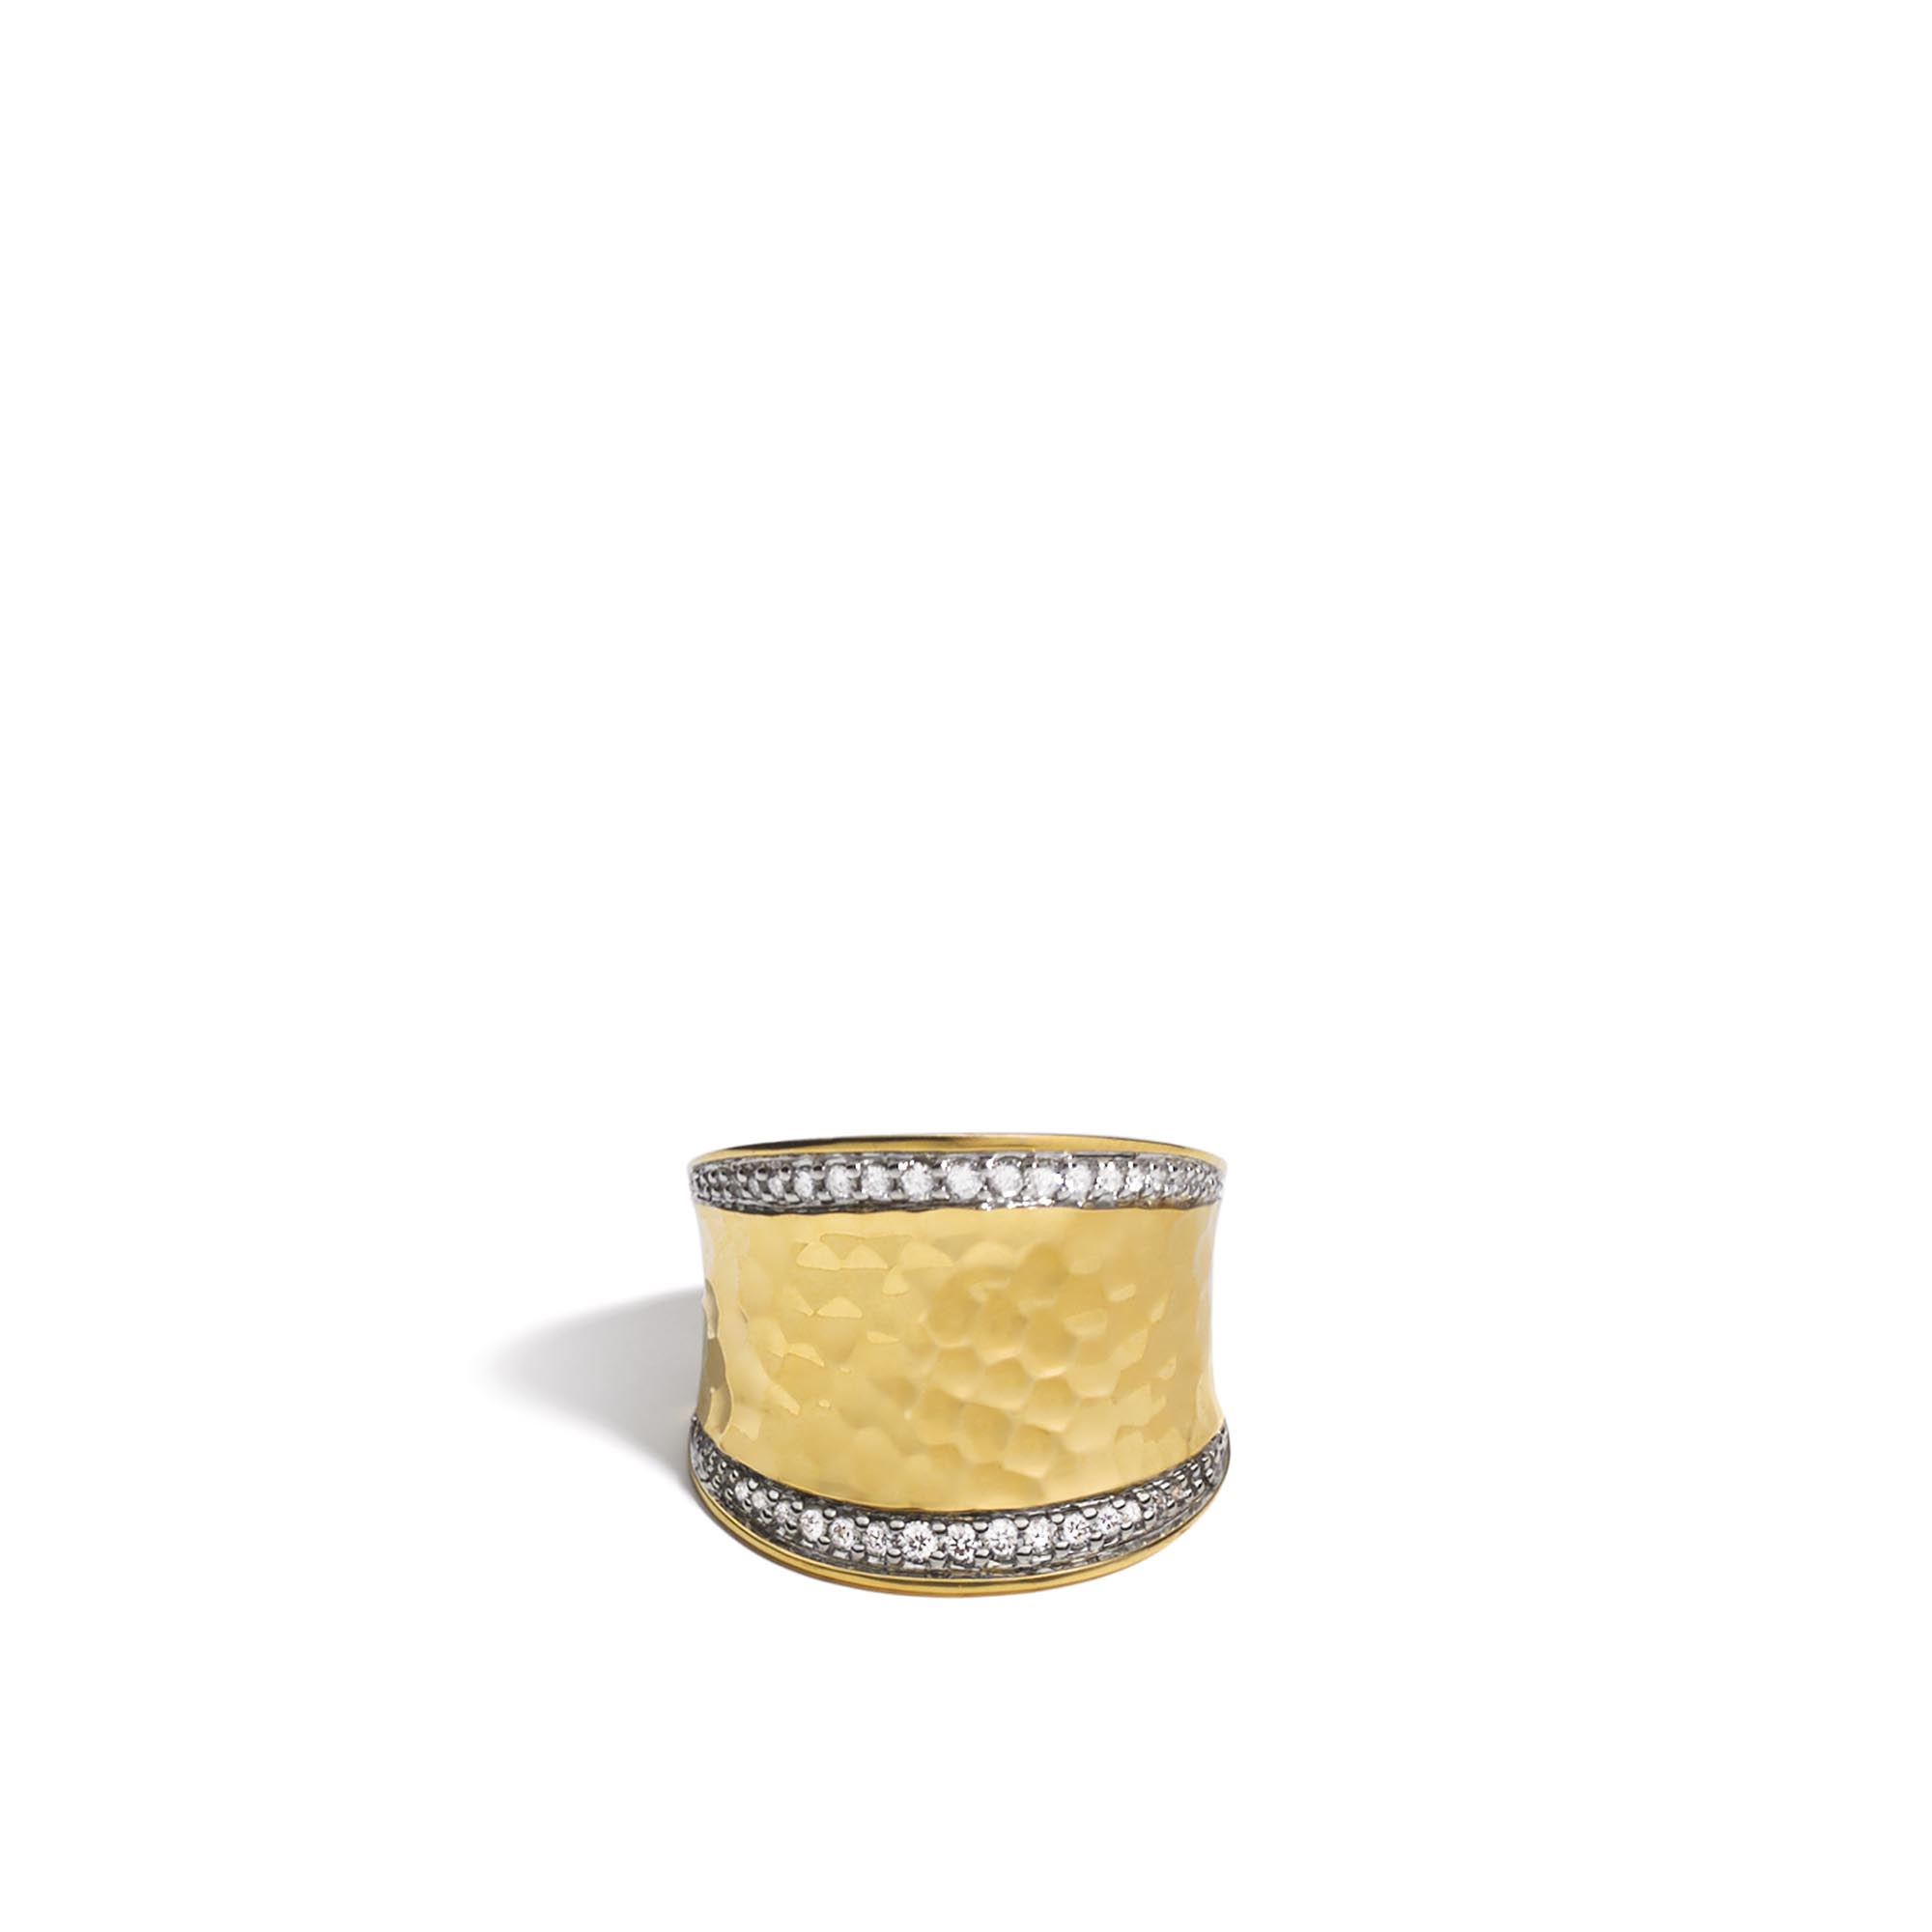 Classic Chain Saddle Ring in Hammered 18K Gold with Diamonds, White Diamond, large